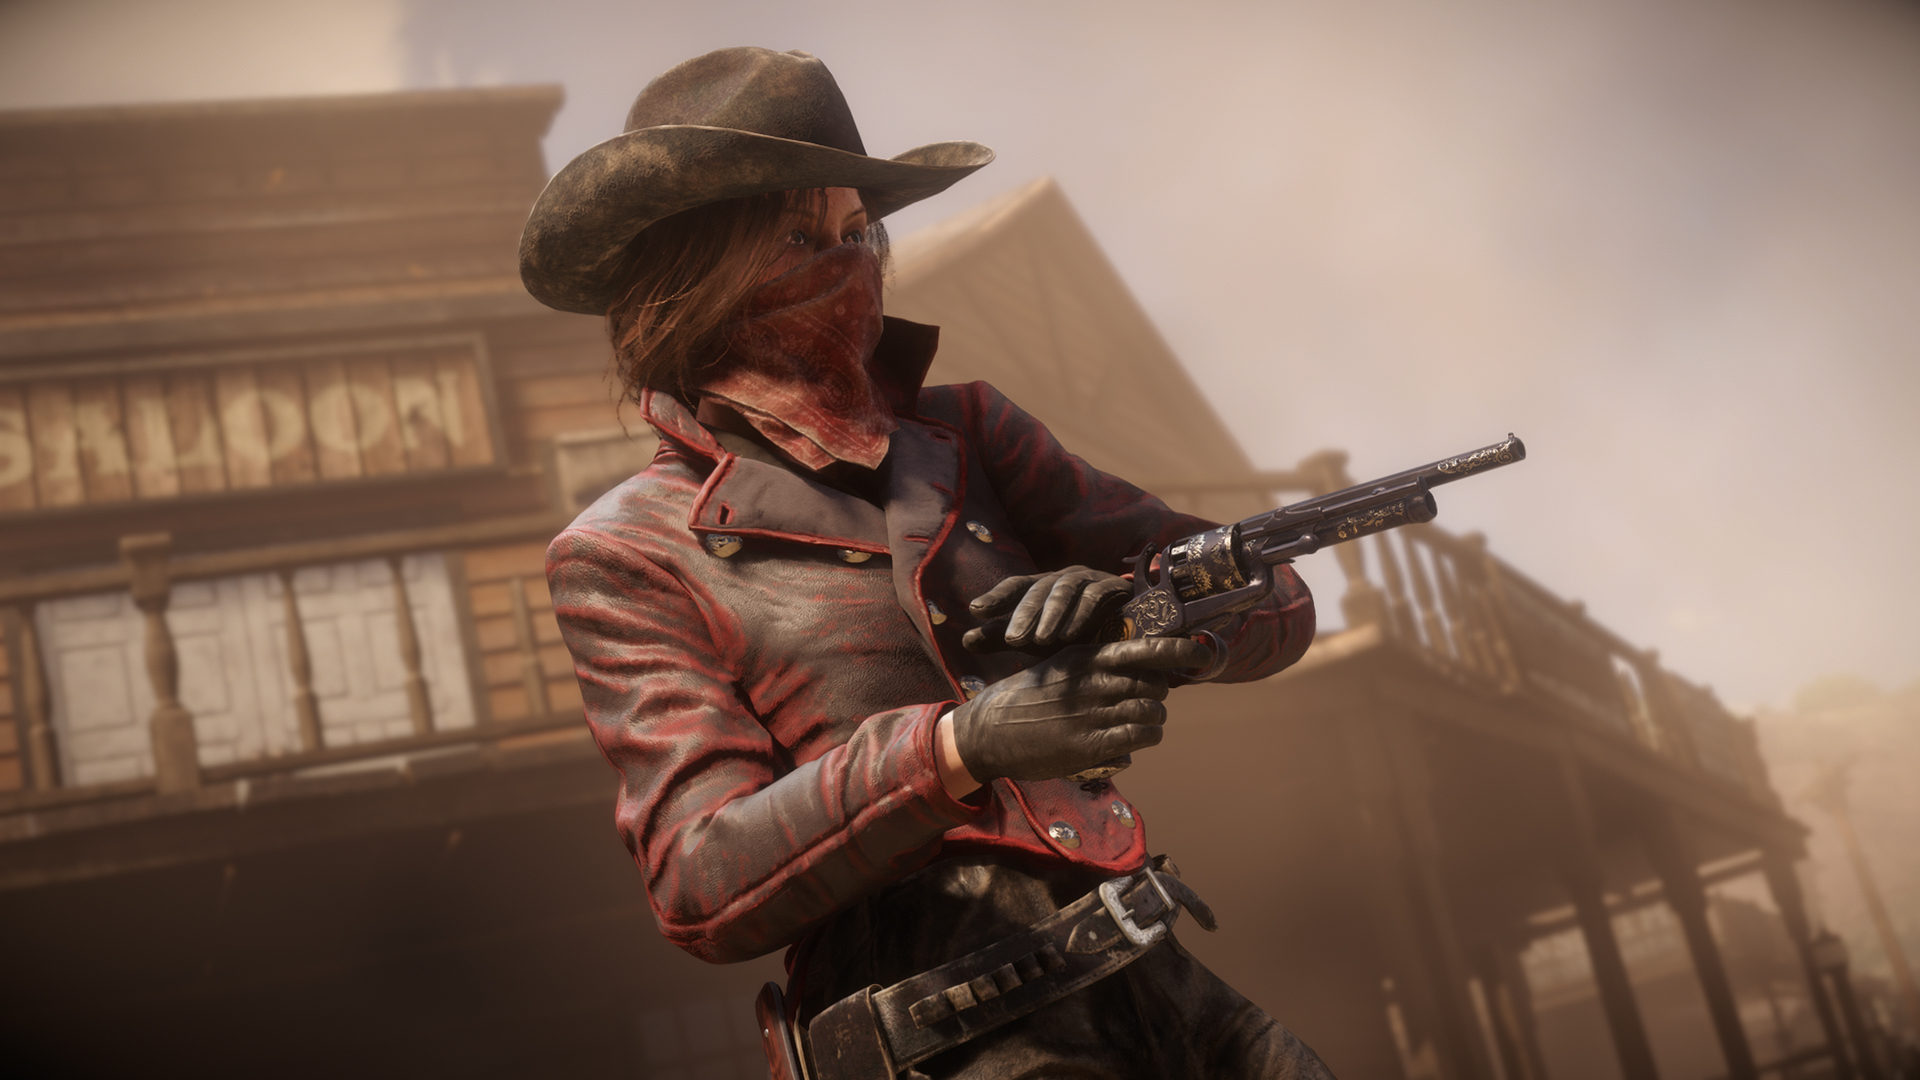 Today on Impulse, we breakdown whether or not its worth playing Red Dead Online in 2019! screenshot